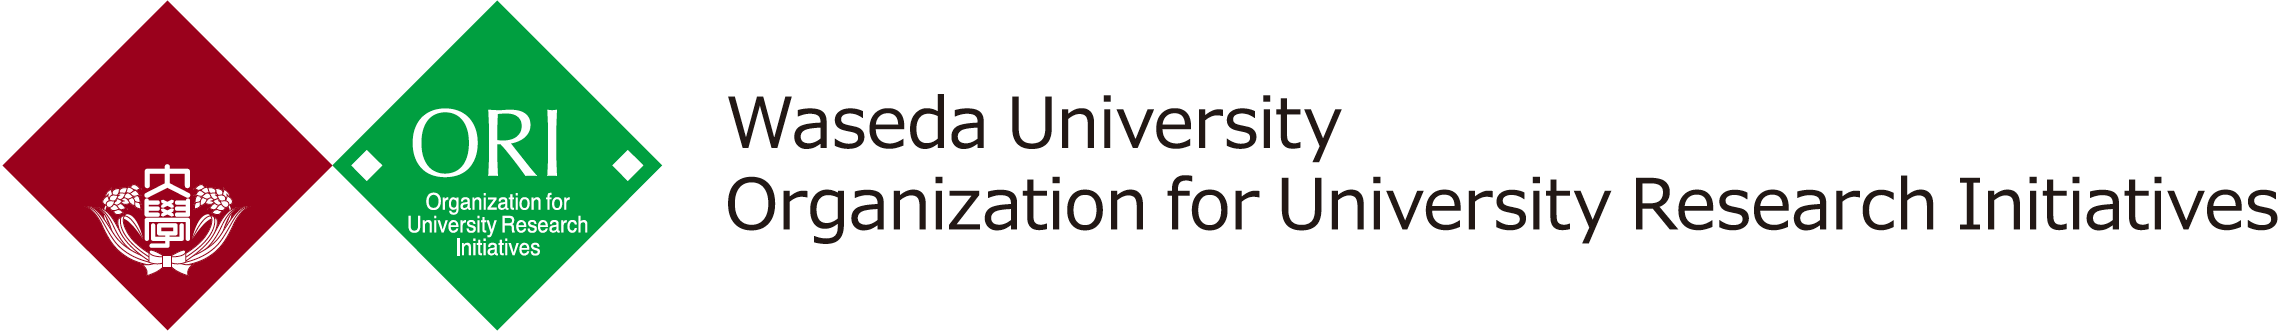 Waseda University, Organization for University Research Initiatives